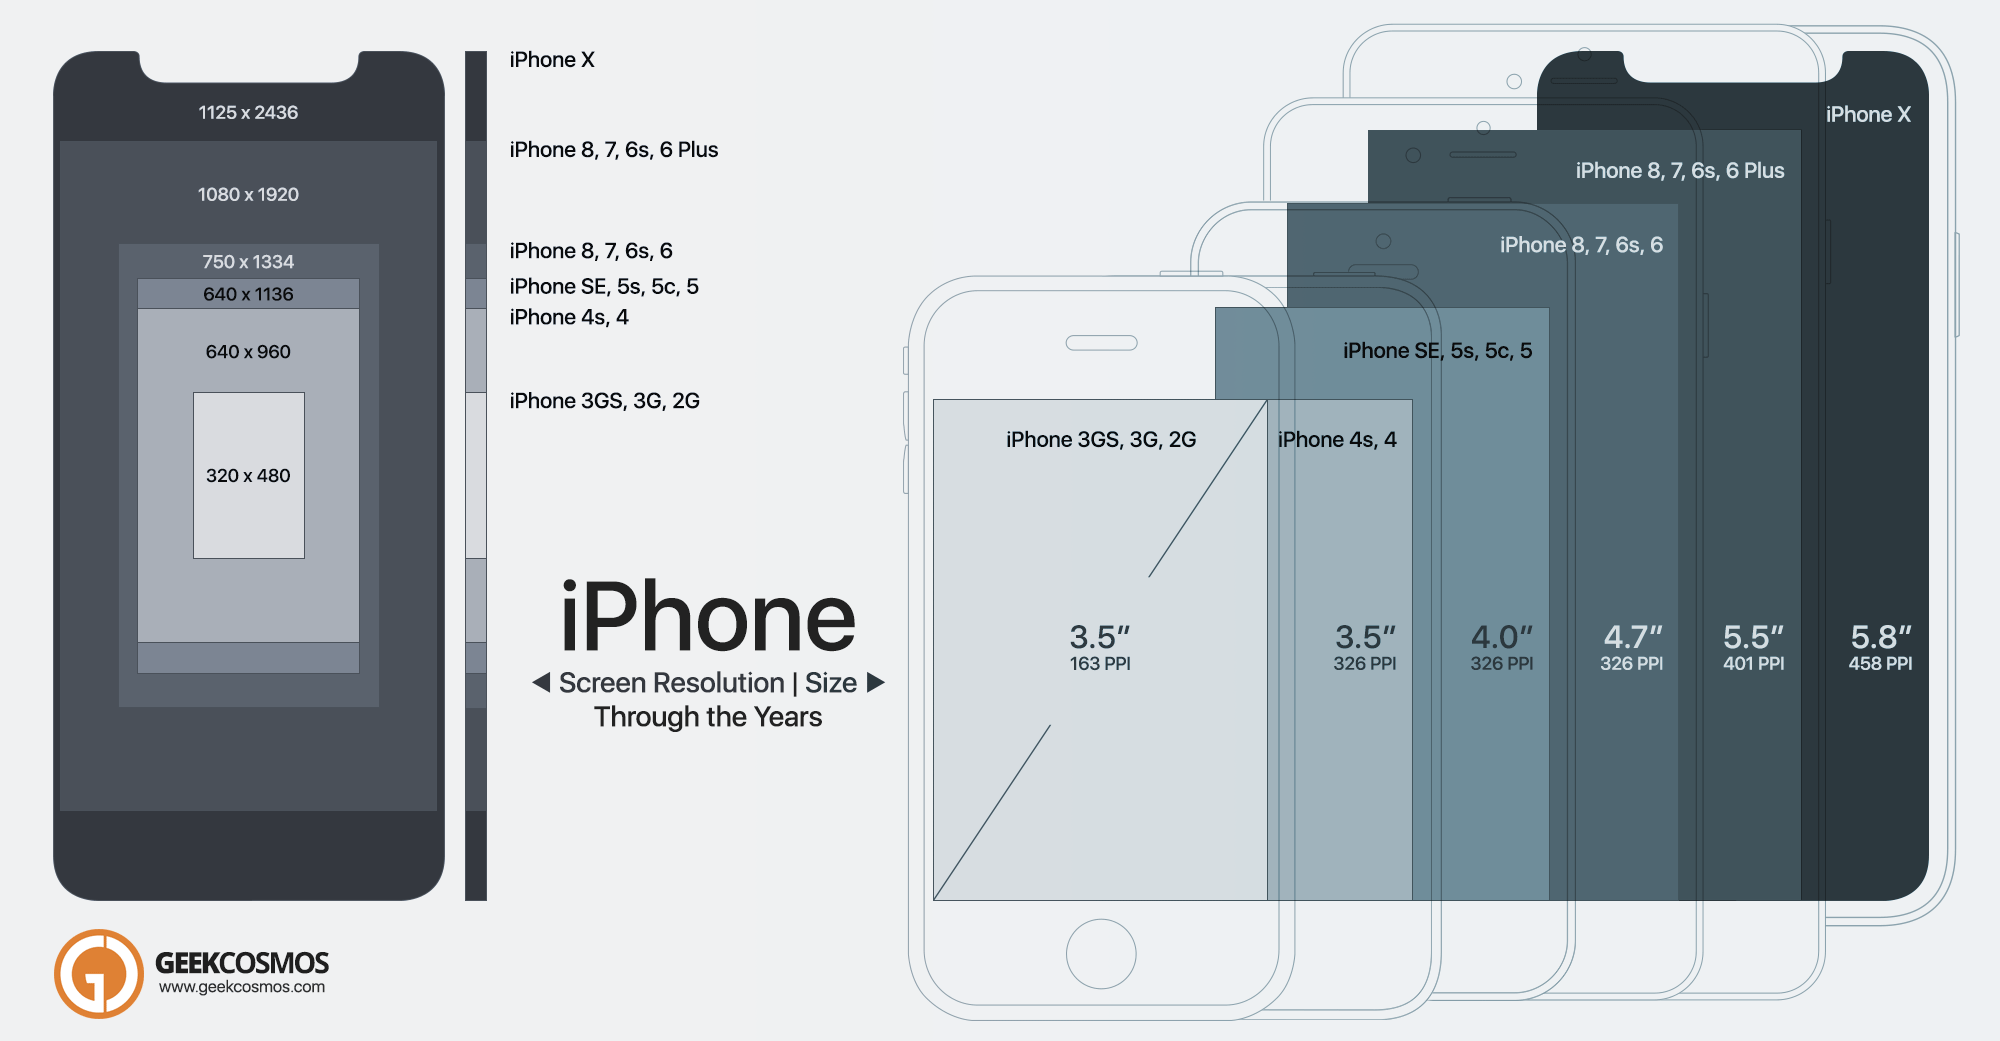 Compare Every iPhone Model Ever Made - Lifewire